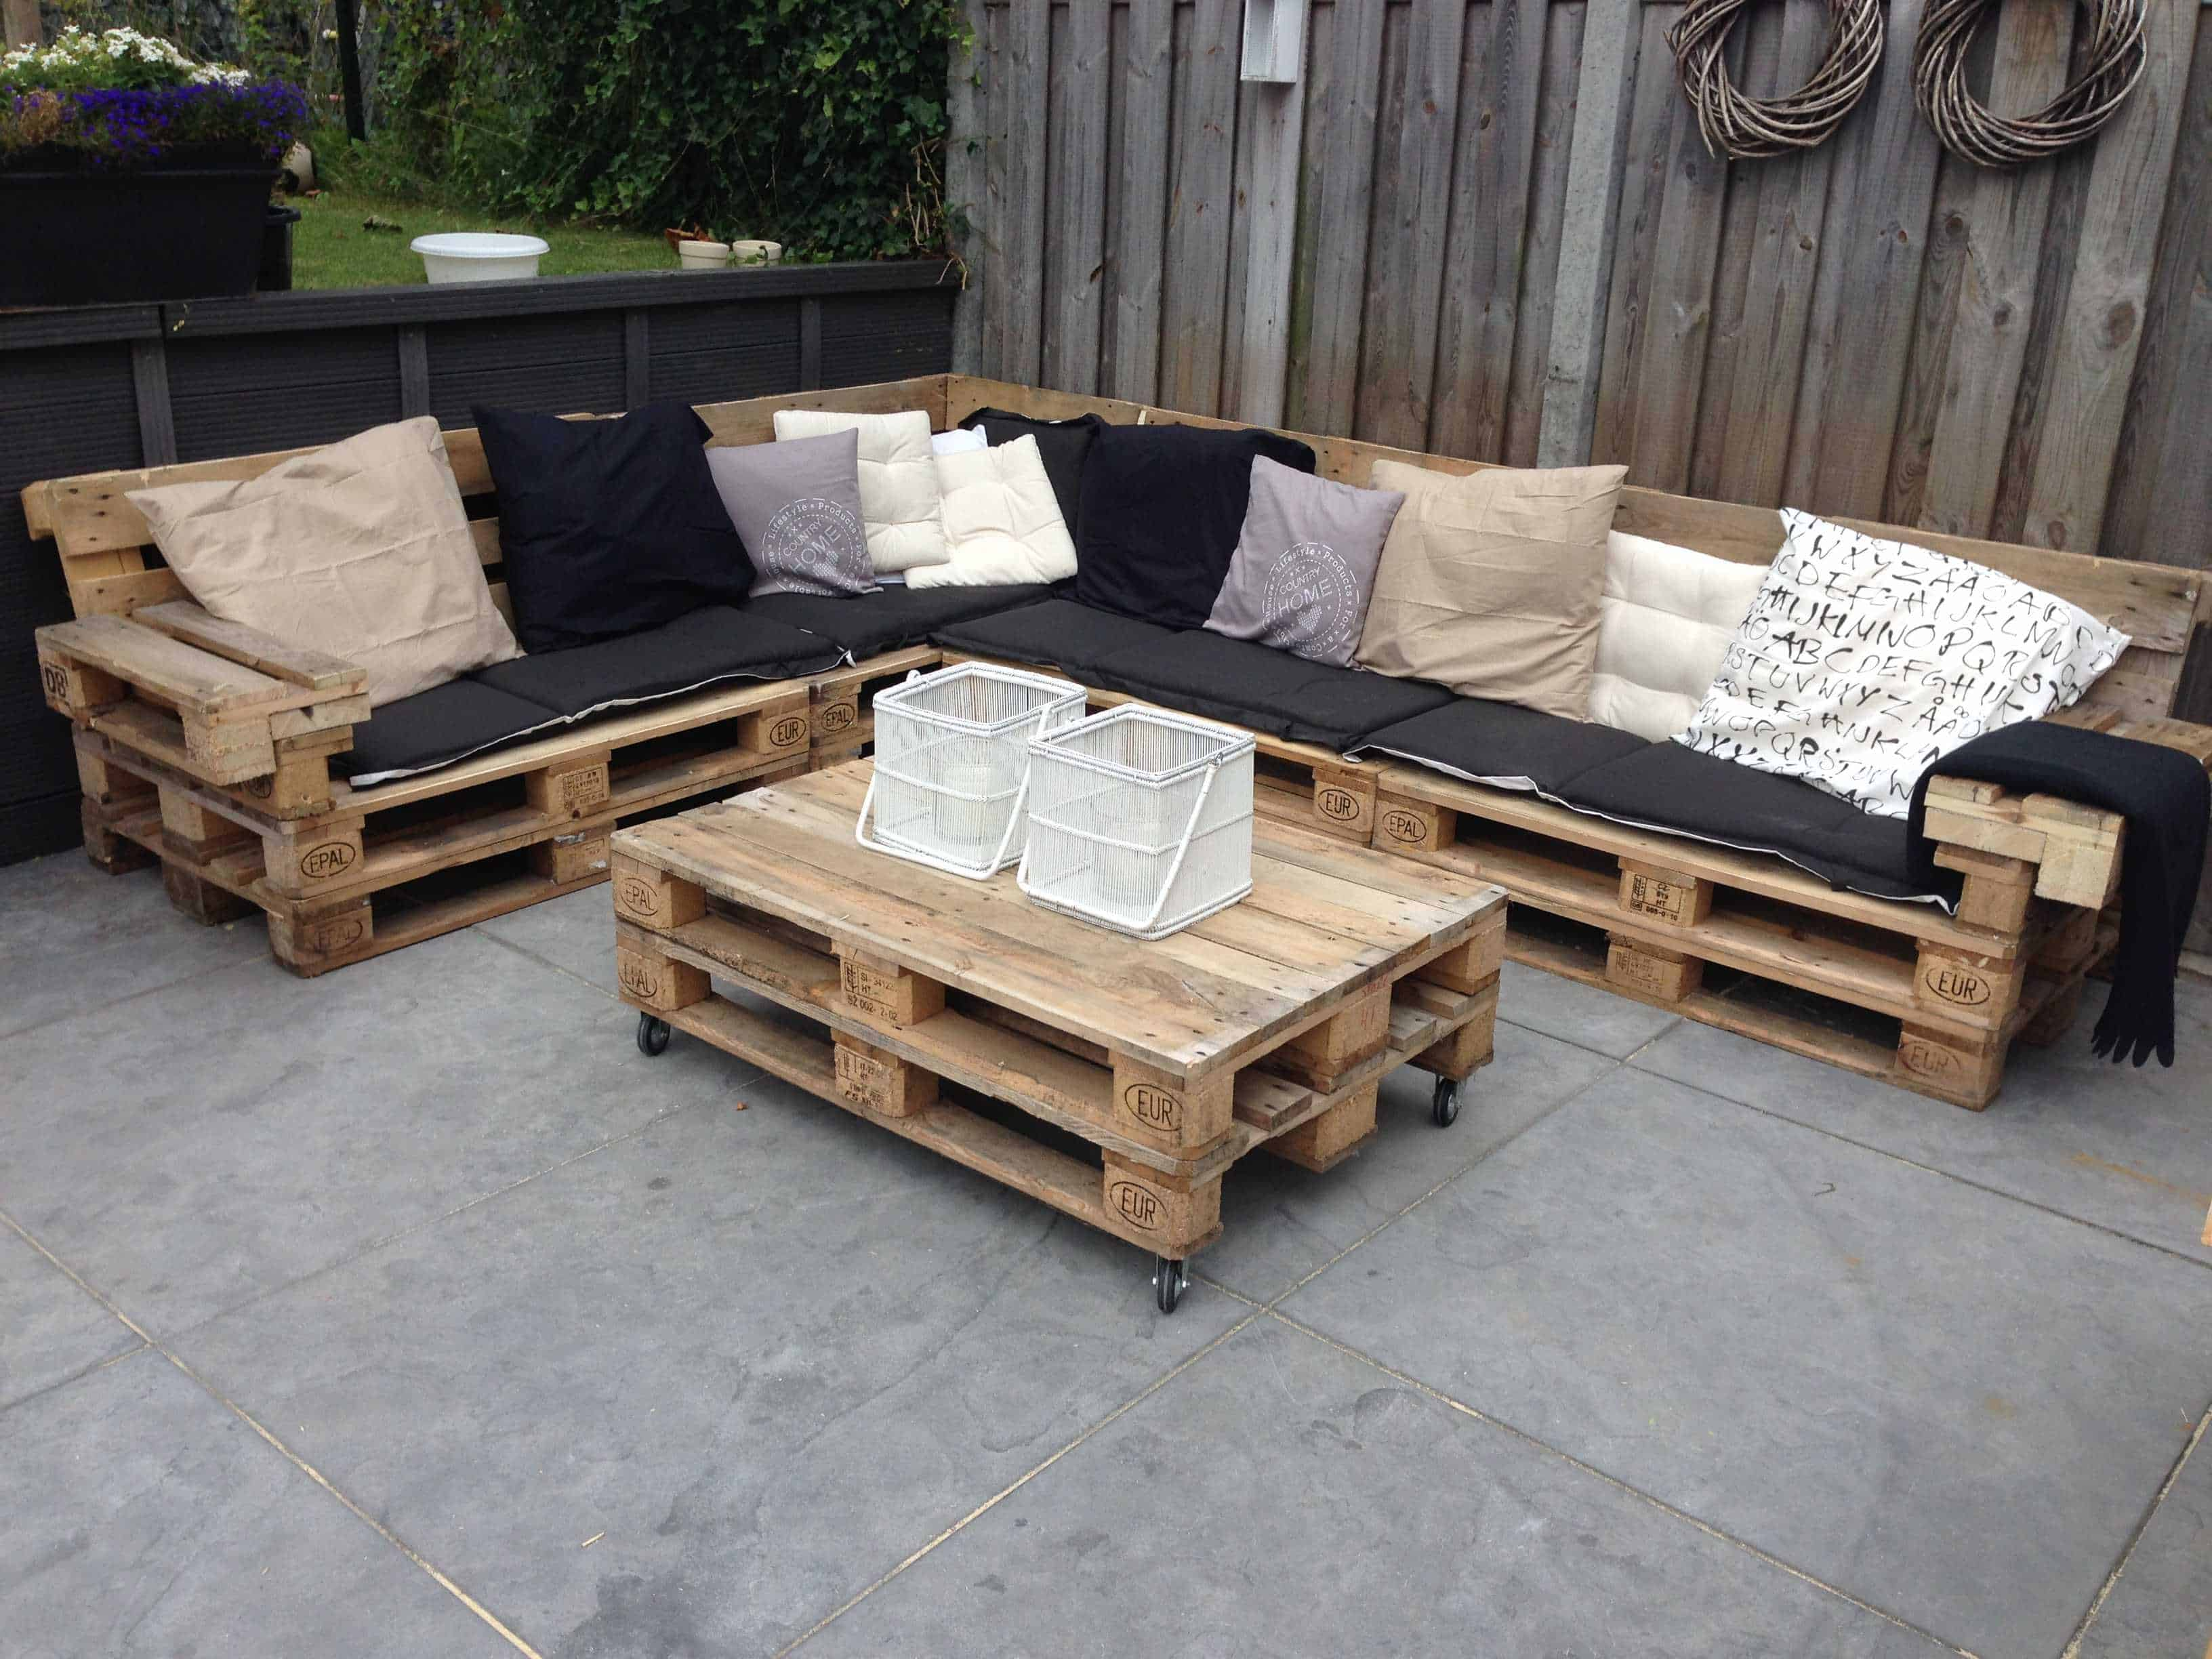 Outdoor LoungemObel Aus Holz ~ Lounge Set With Repurposed Euro Pallets • 1001 Pallets